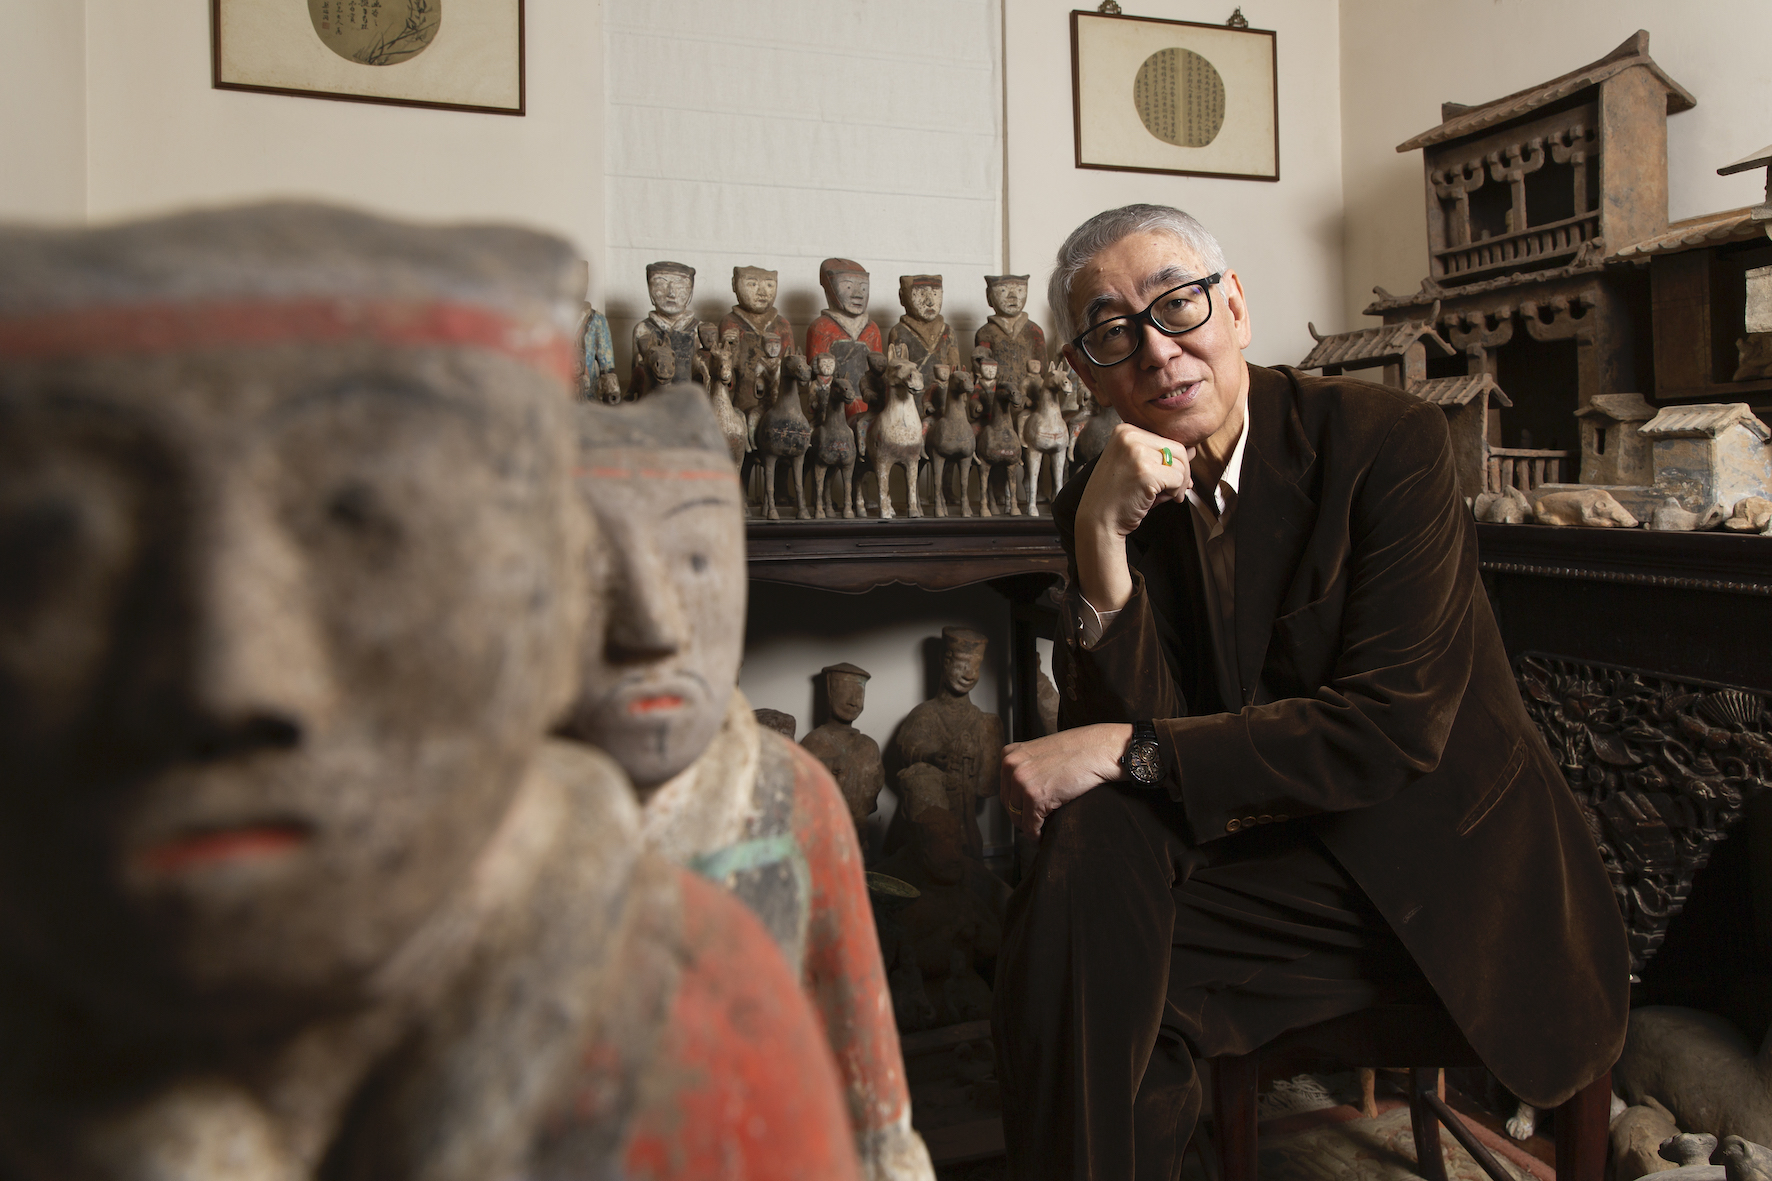 Veteran Broadcaster Robert Chua Invites us into His Home Filled with Chinese Antiques